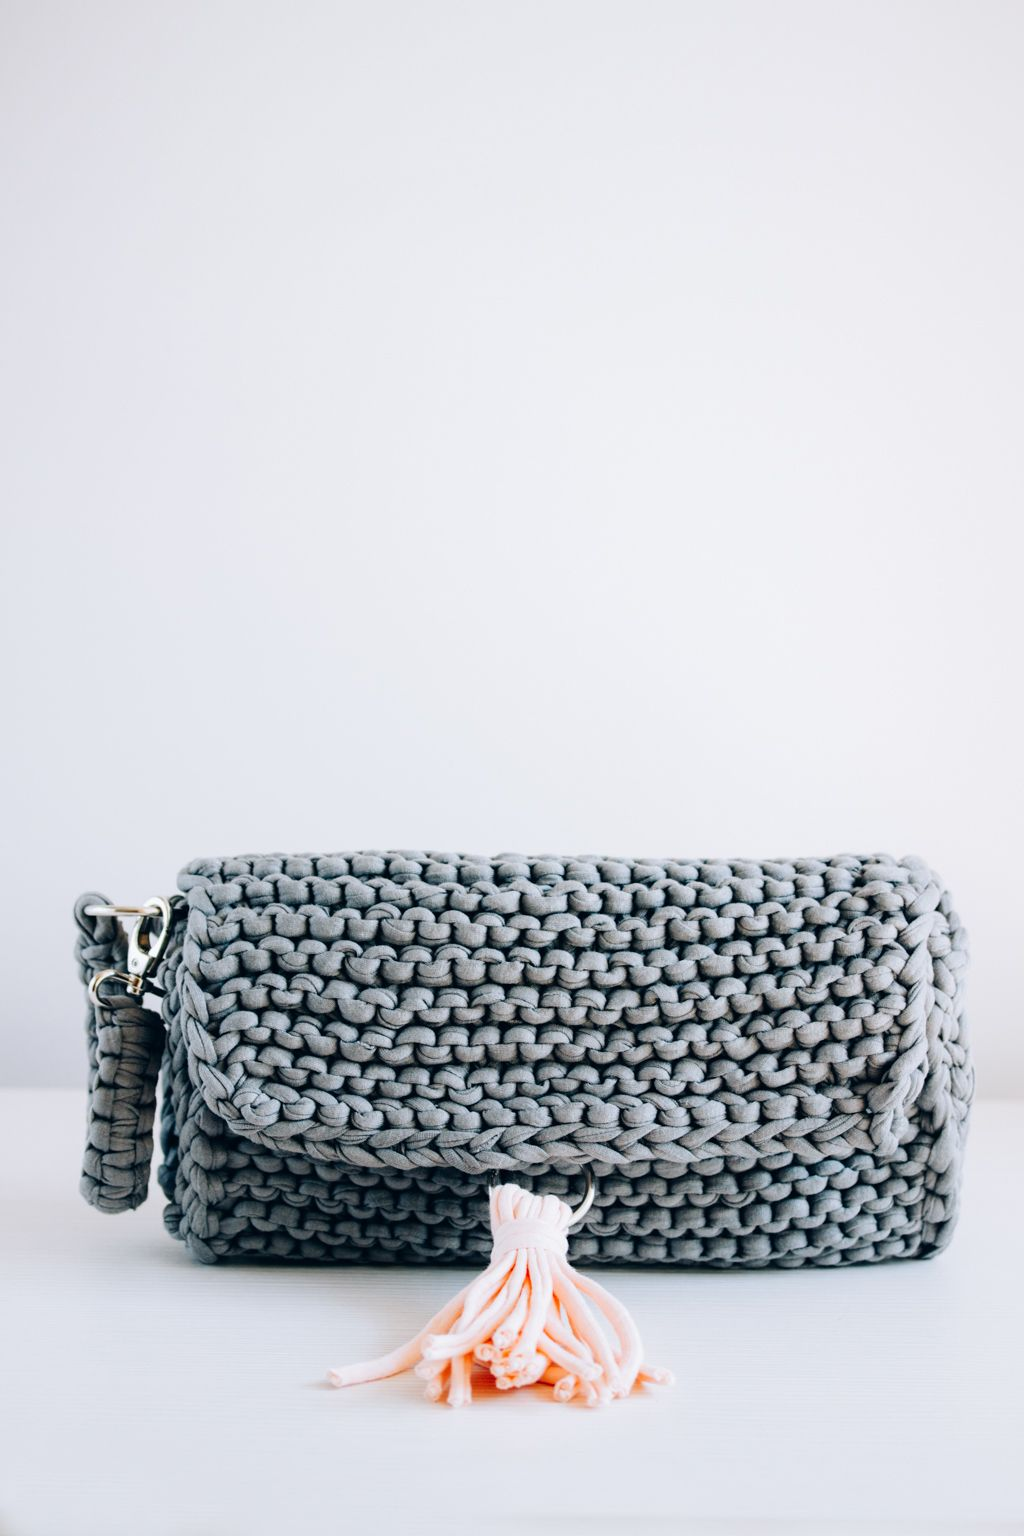 Super easy step by step diy - knitted summer purse that will match ...